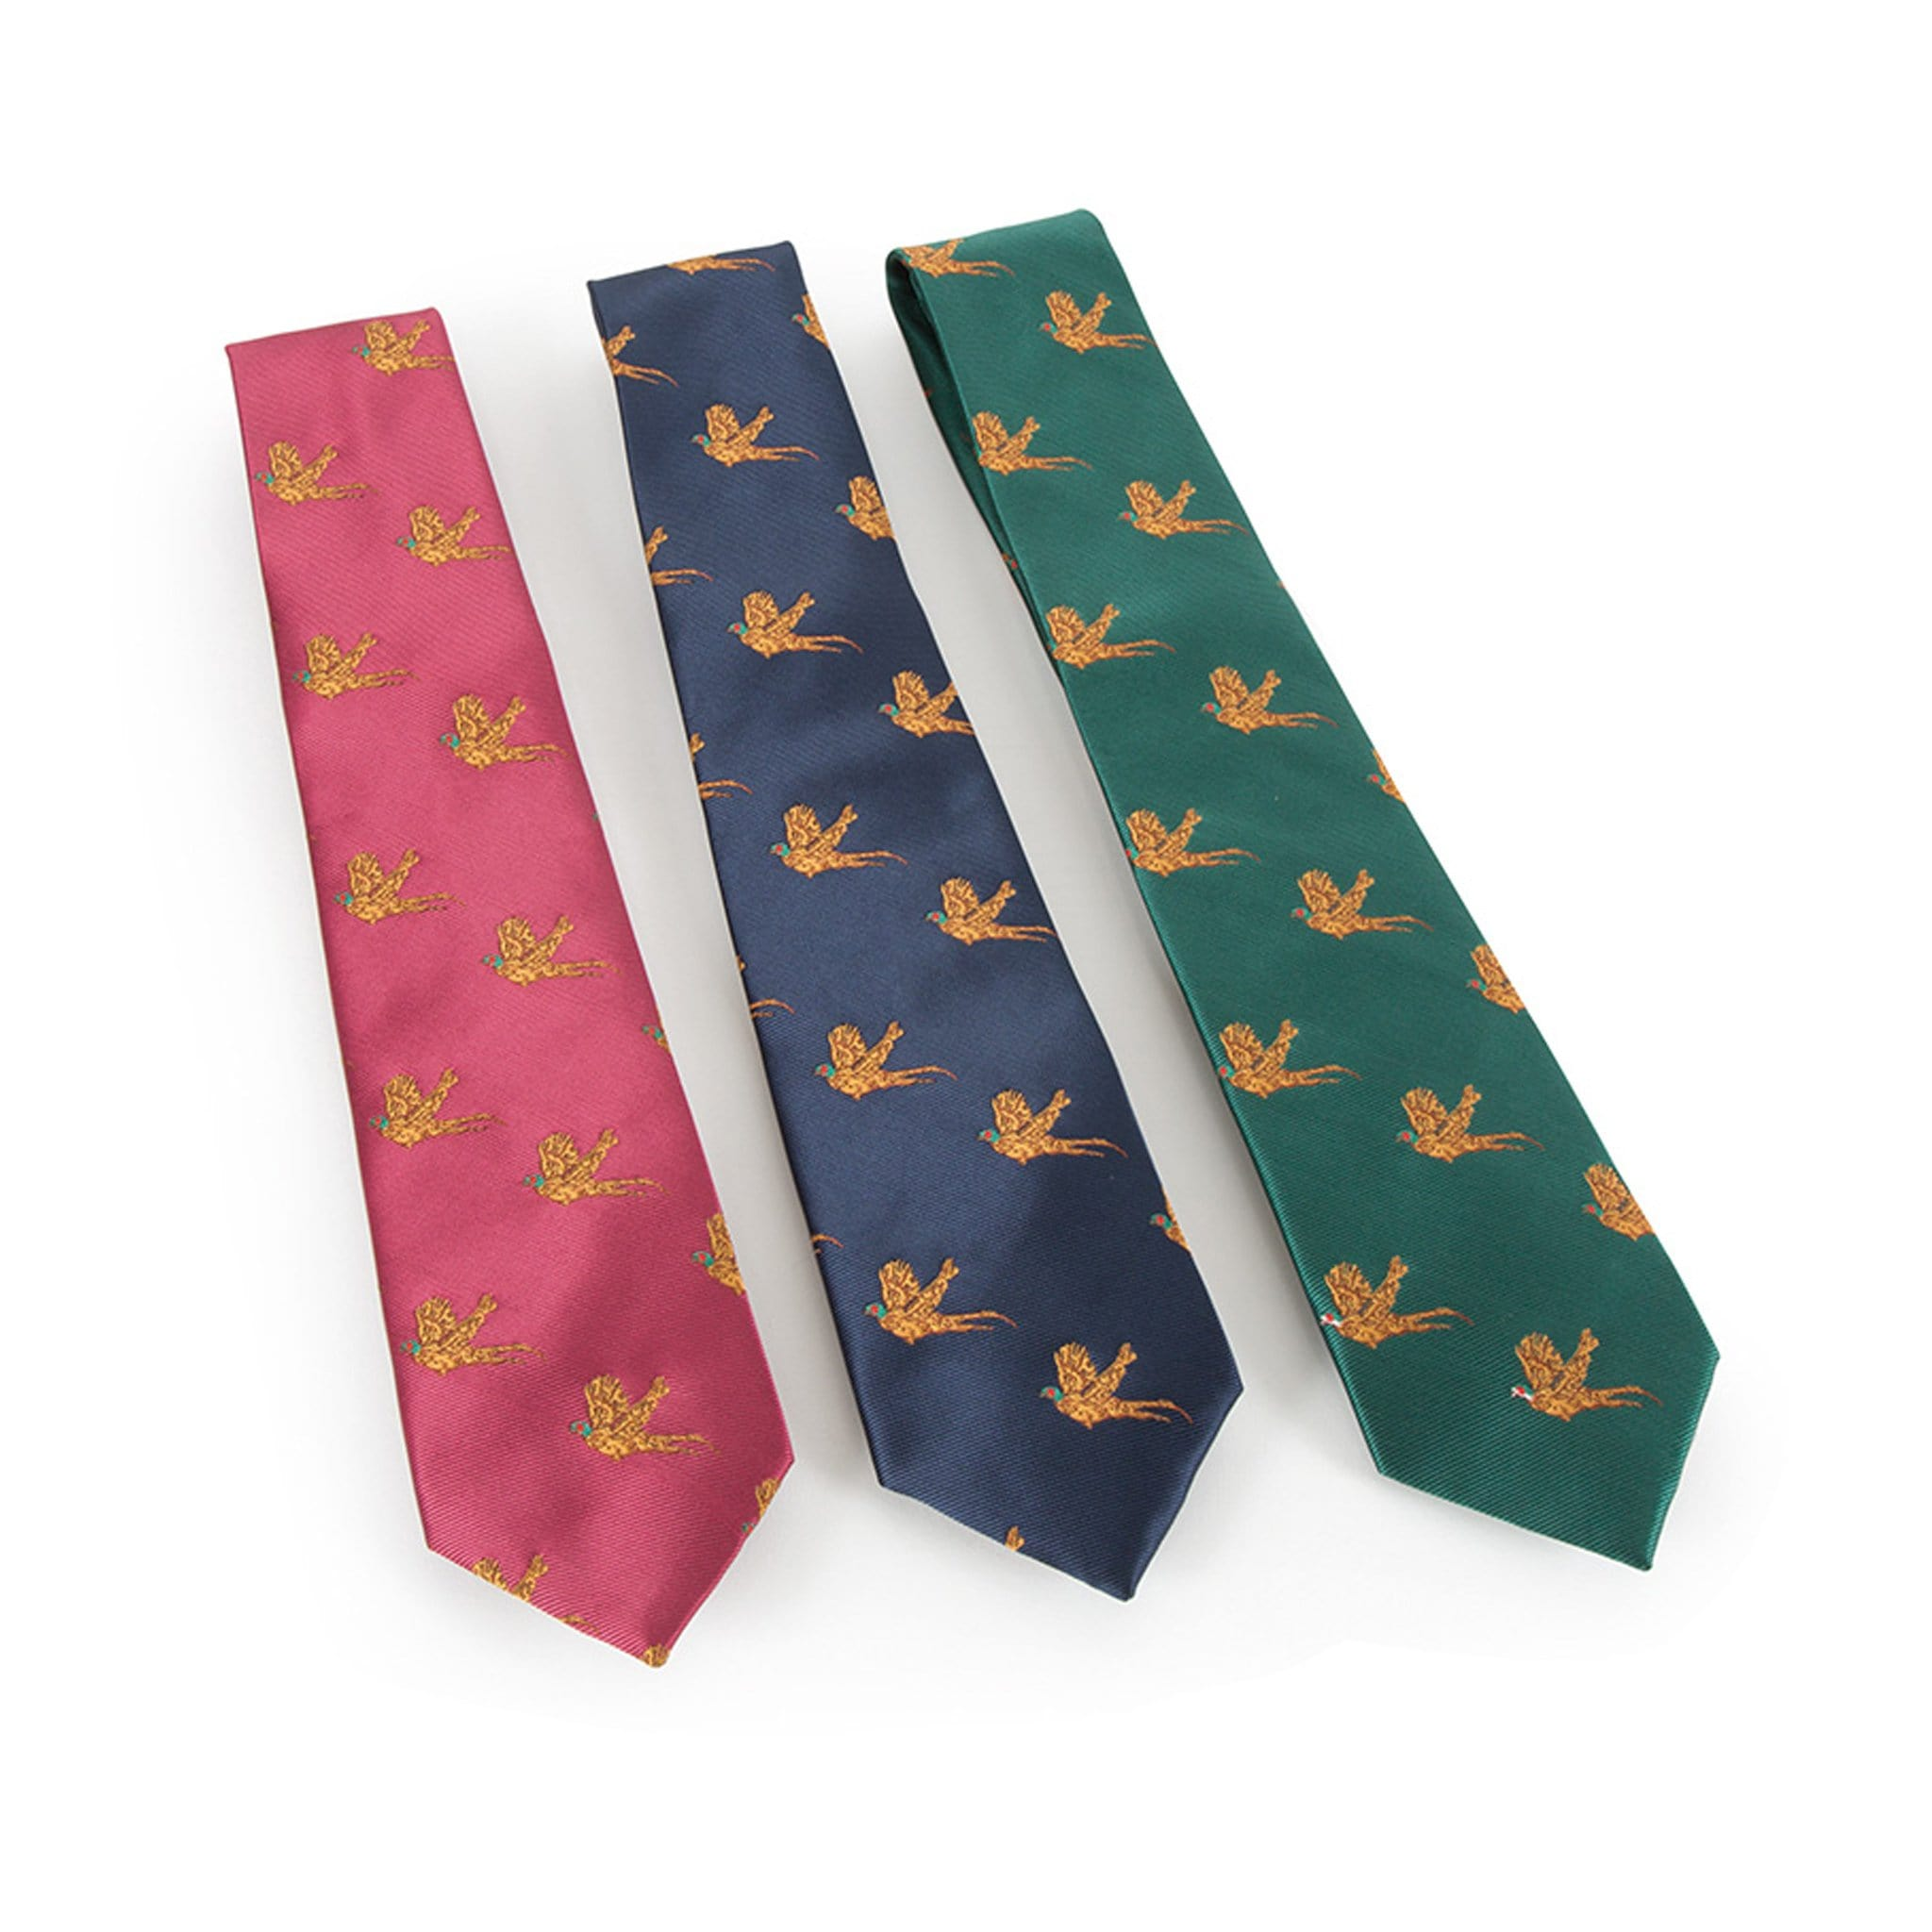 Shires Pheasant Show Tie 8624 All Colours